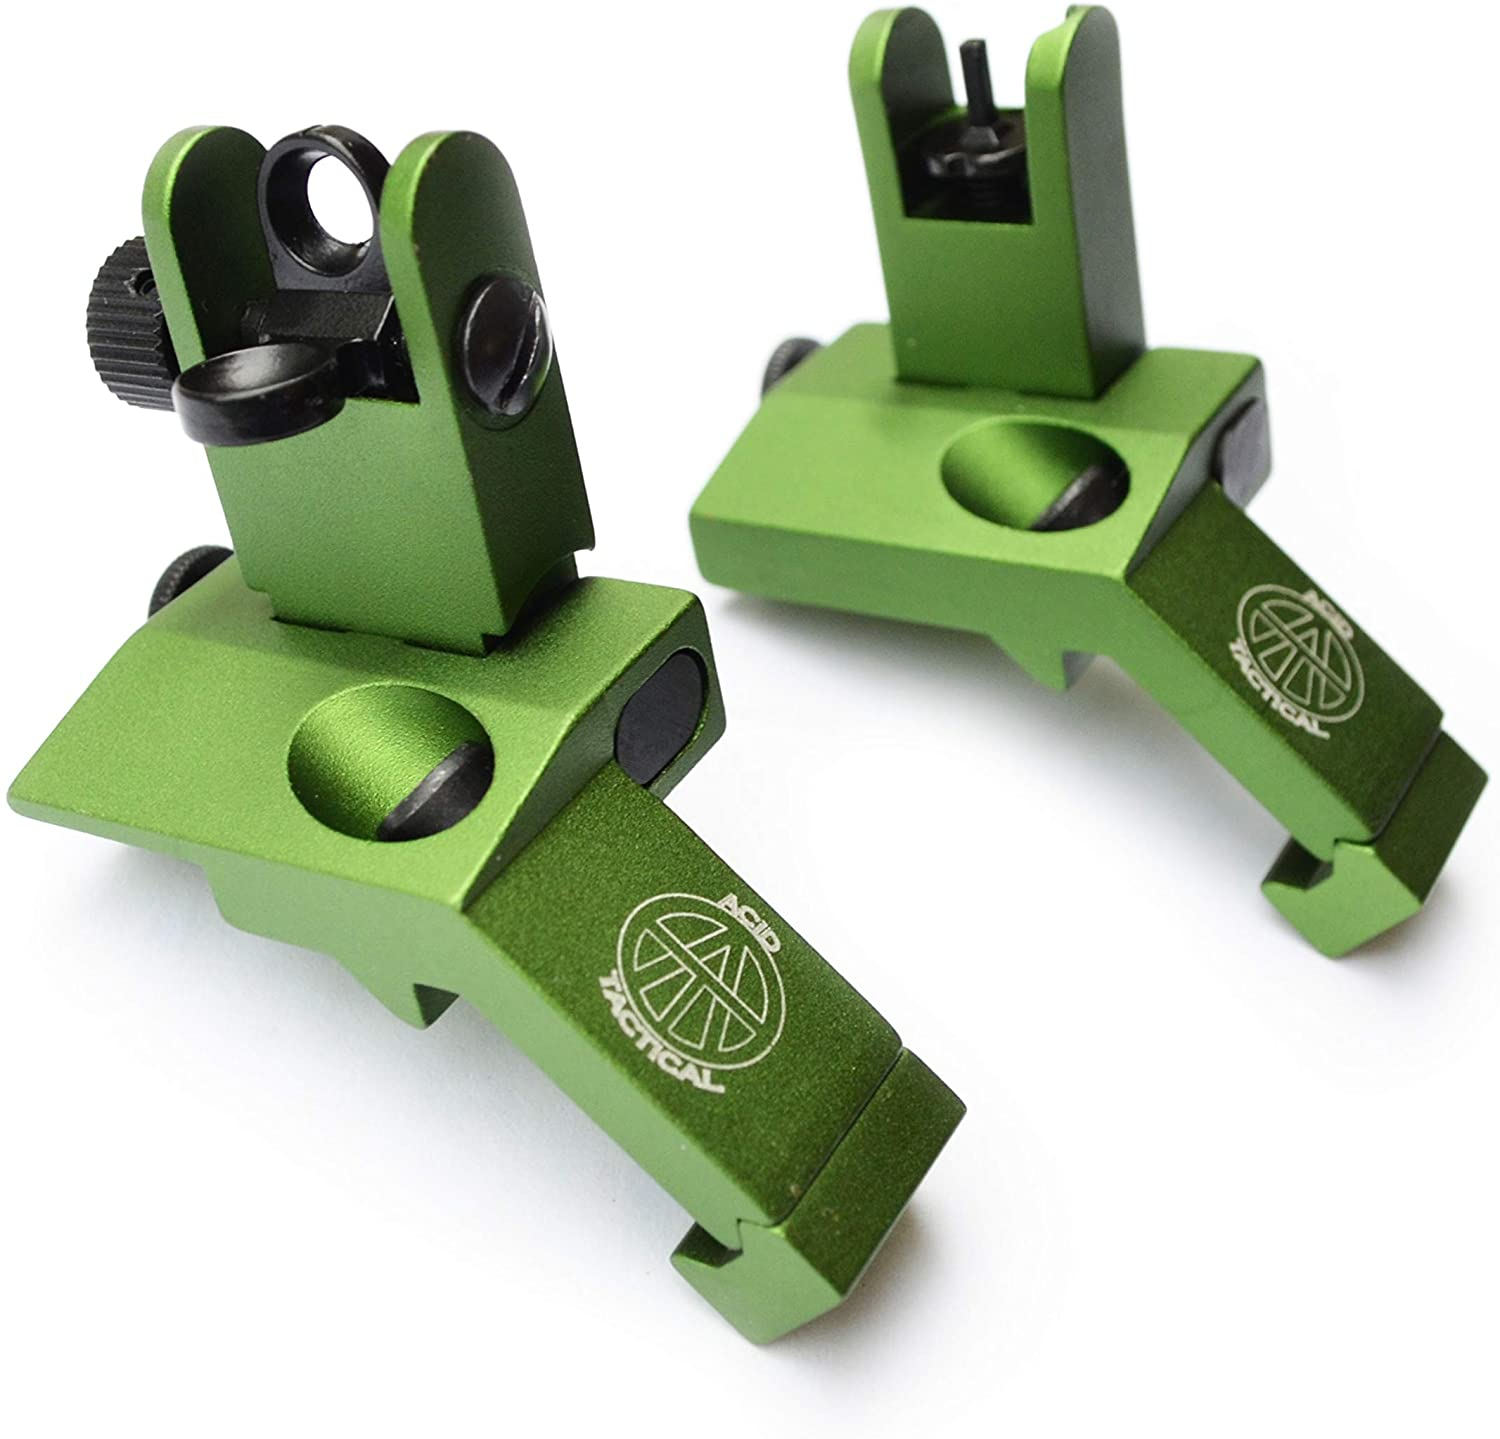 Acid Tactical Rifle 45 Degree Angled Back up Iron Sights BUIS Duel Aperture Anodized Green